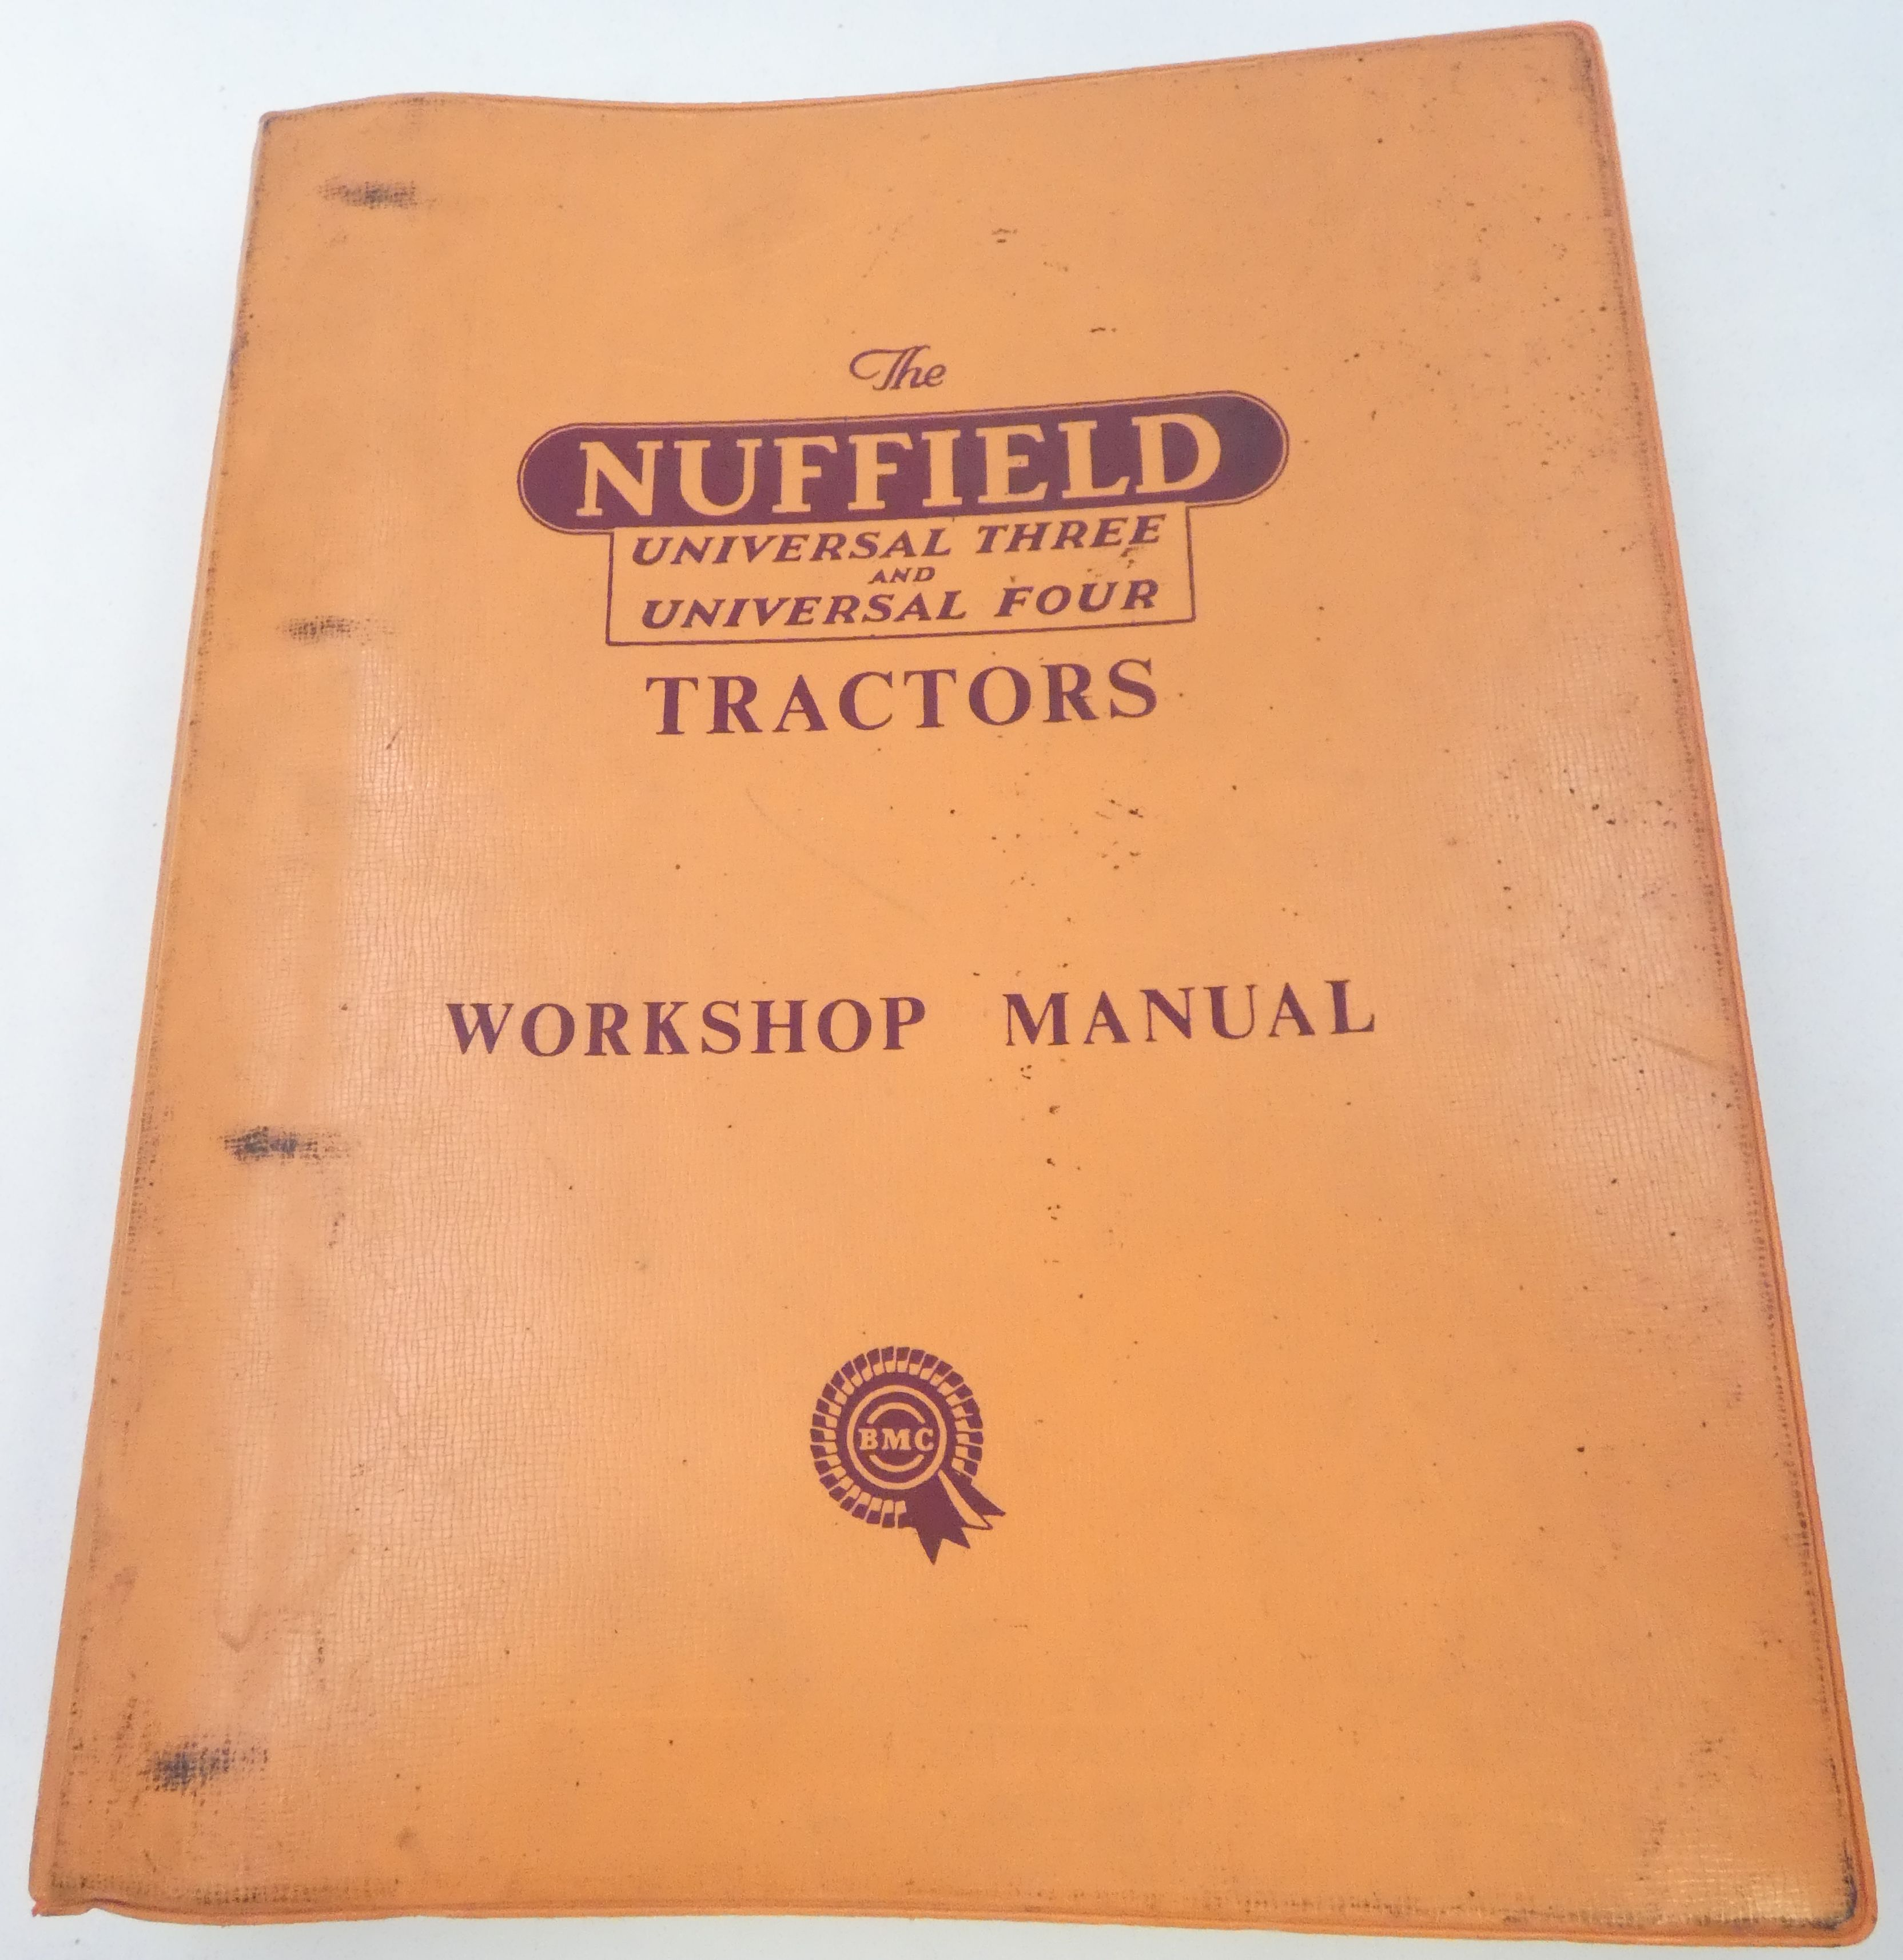 The Nuffield Universal three and four tractors workshop manual